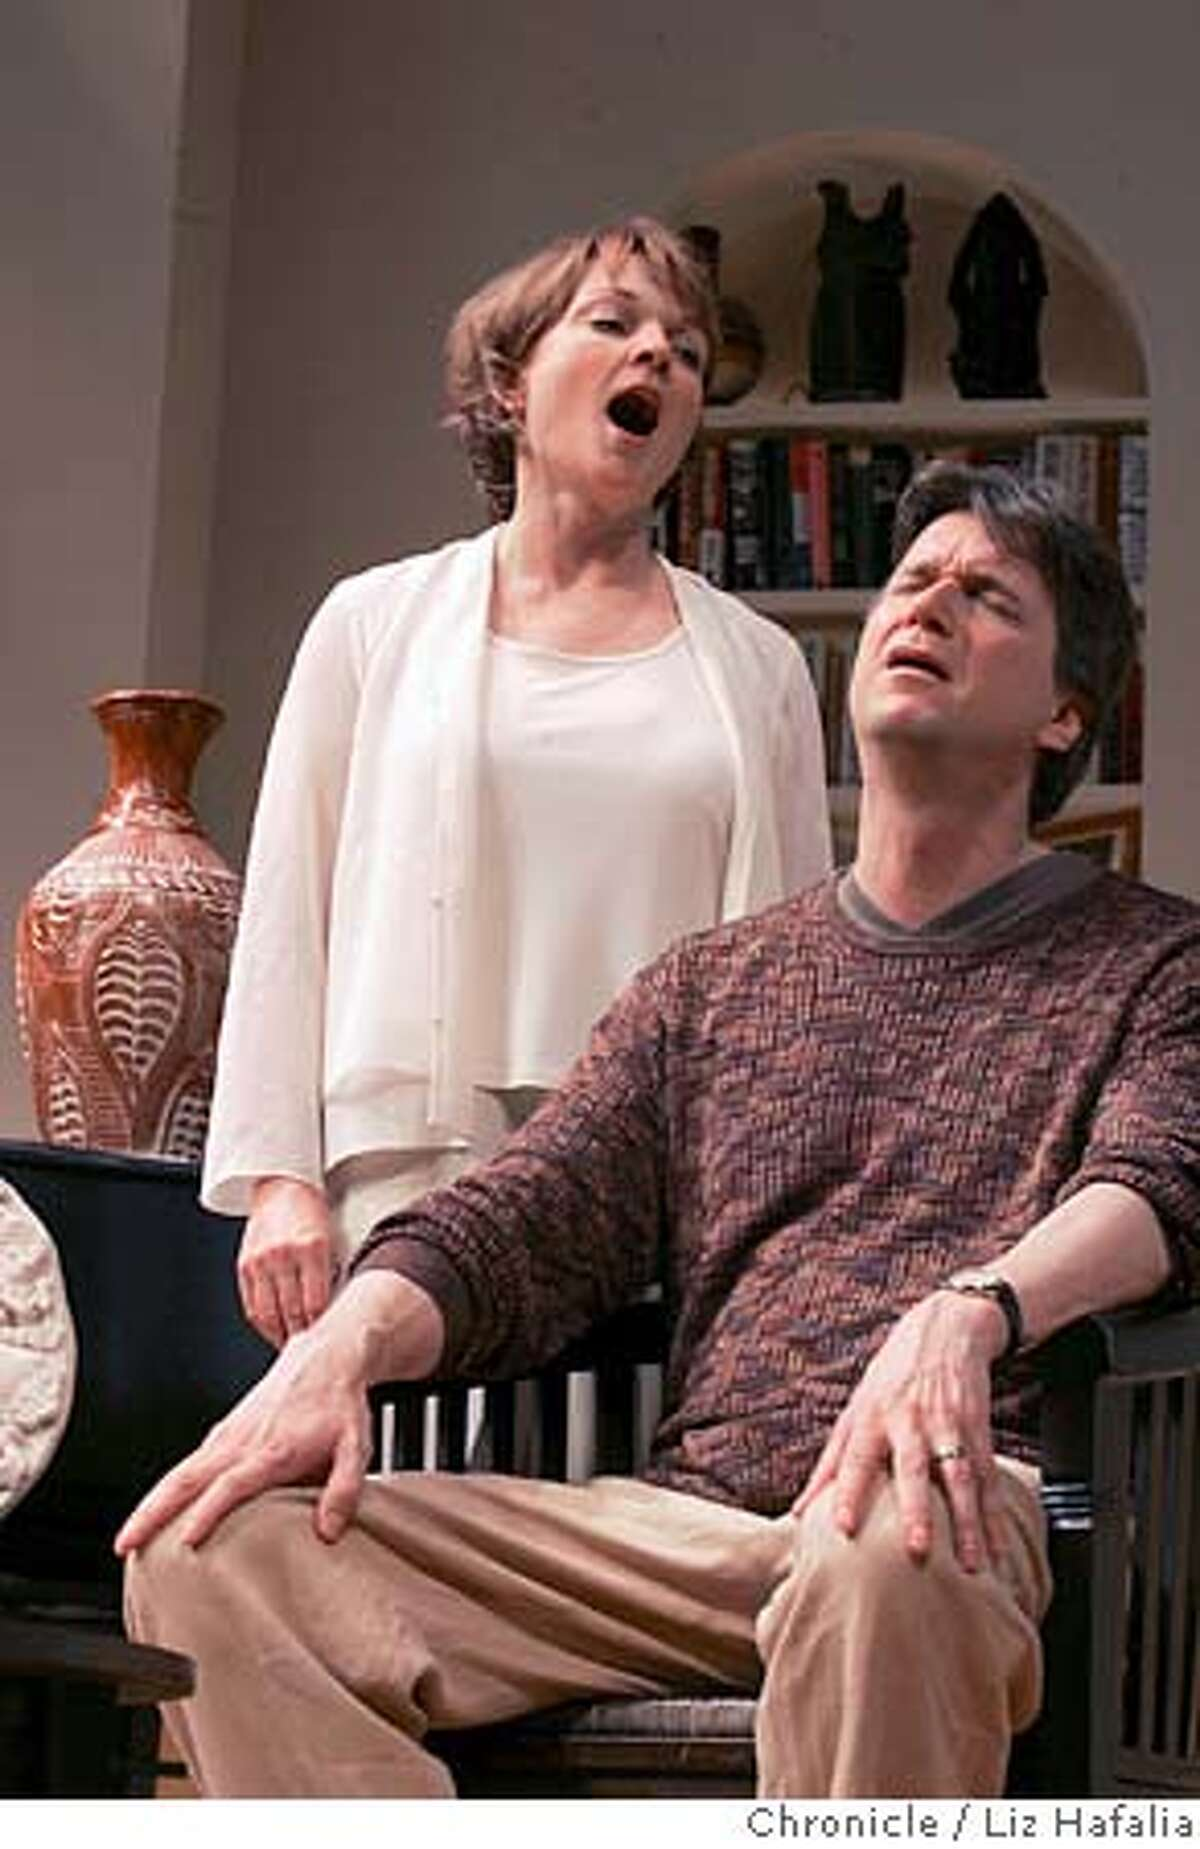 """GOAT17085_LH.JPG Dress rehearsal for Edward Albee's """"The Goat"""" at ACT. Leads Don McManus as Martin and Pamela Reed as his wife Stevie. Photographed by Liz Hafalia on 6/9/05 in San Francisco, CA. Creditted to the San Francisco Chronicle/Liz Hafalia"""